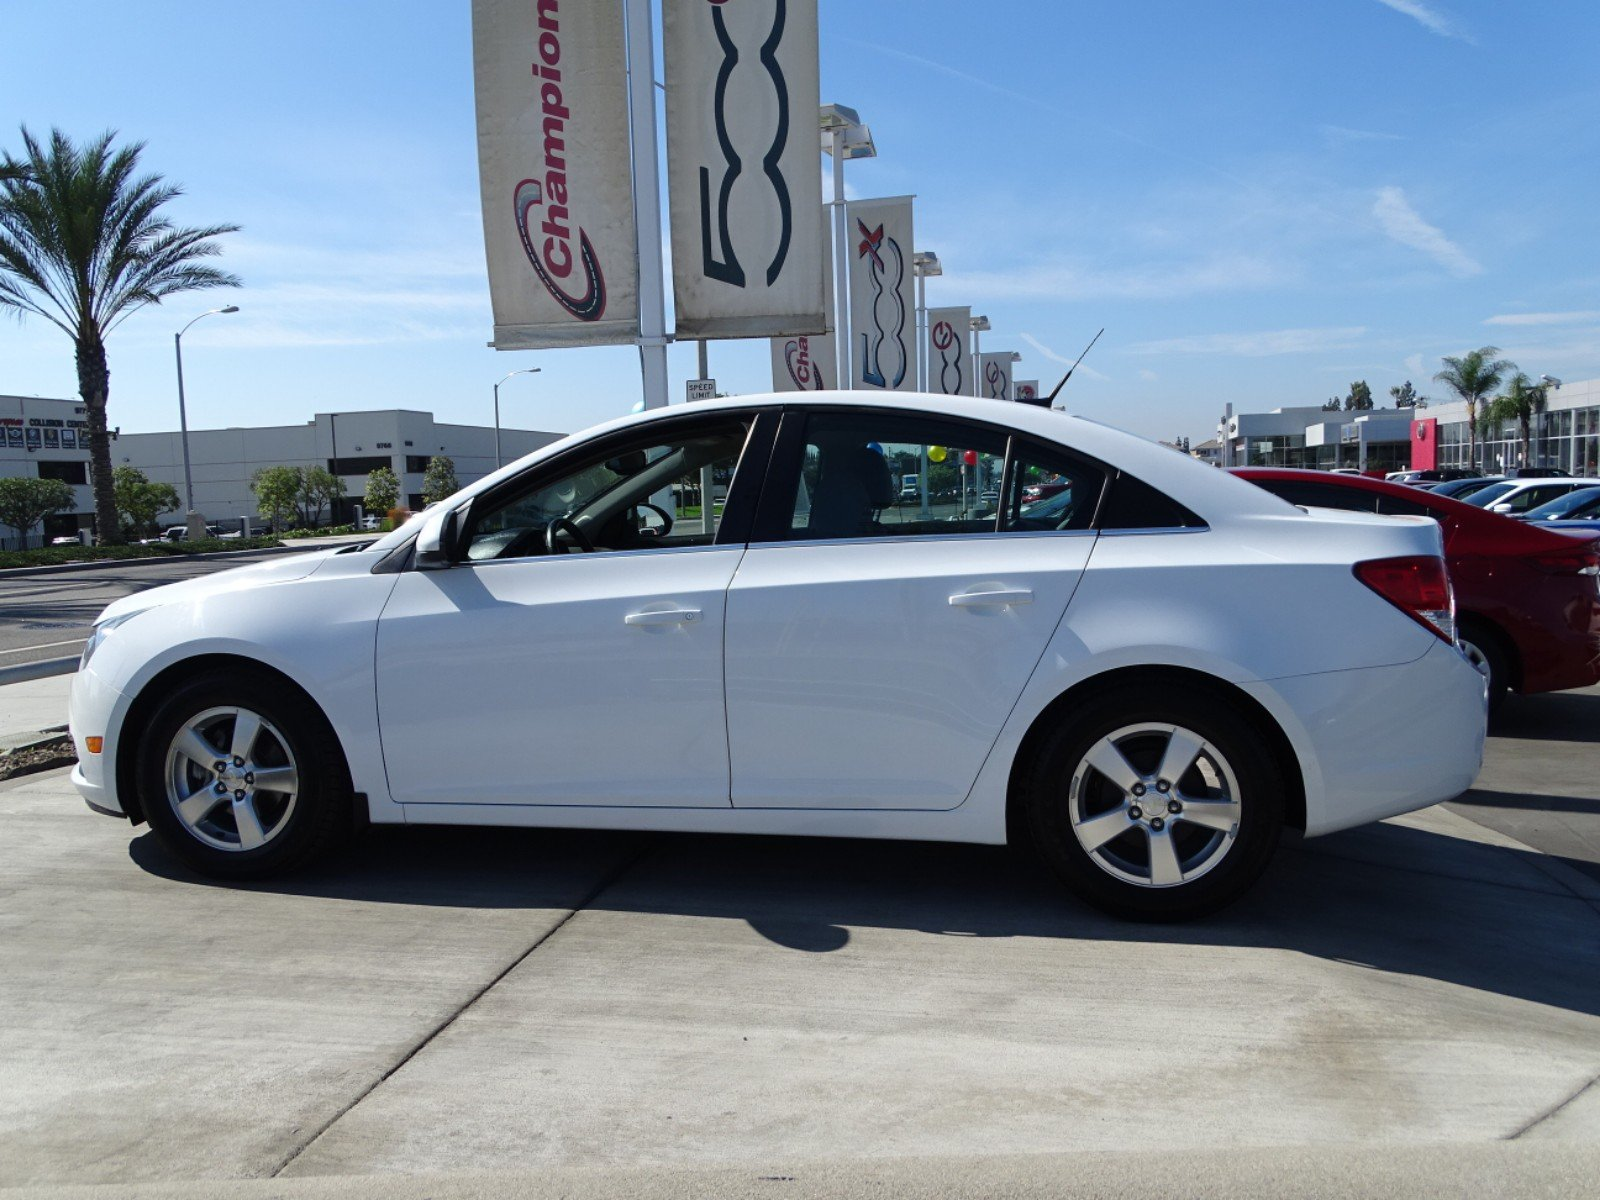 Superior Pre Owned 2013 Chevrolet Cruze 1LT 4dr Car In Downey #203739 | Champion FIAT